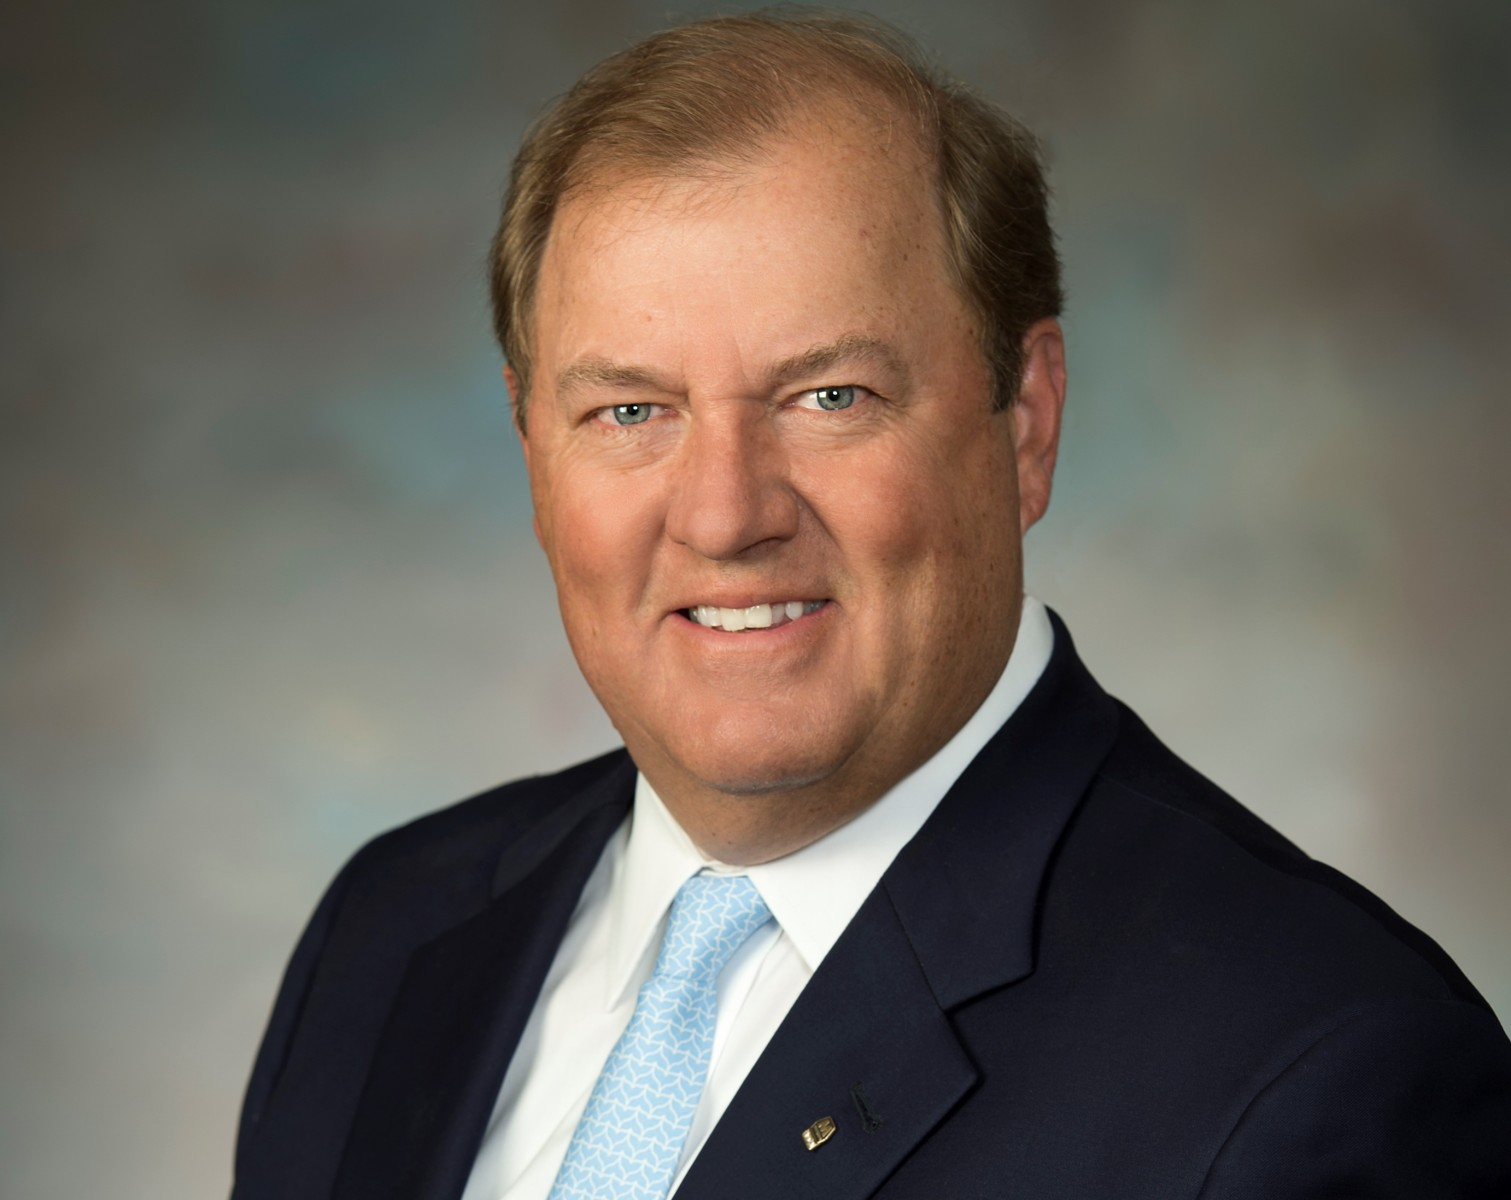 MPC Chairman, President and CEO Gary R. Heminger